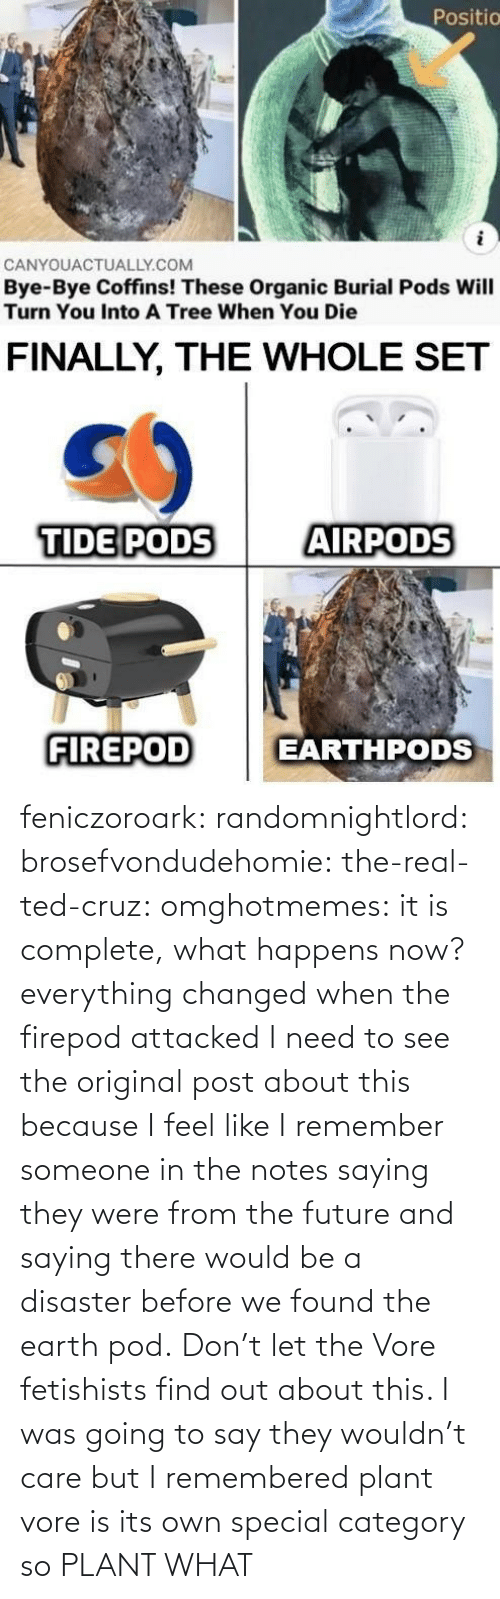 out: feniczoroark:  randomnightlord:  brosefvondudehomie: the-real-ted-cruz:  omghotmemes: it is complete, what happens now? everything changed when the firepod attacked    I need to see the original post about this because I feel like I remember someone in the notes saying they were from the future and saying there would be a disaster before we found the earth pod.    Don't let the Vore fetishists find out about this.    I was going to say they wouldn't care but I remembered plant vore is its own special category so   PLANT WHAT